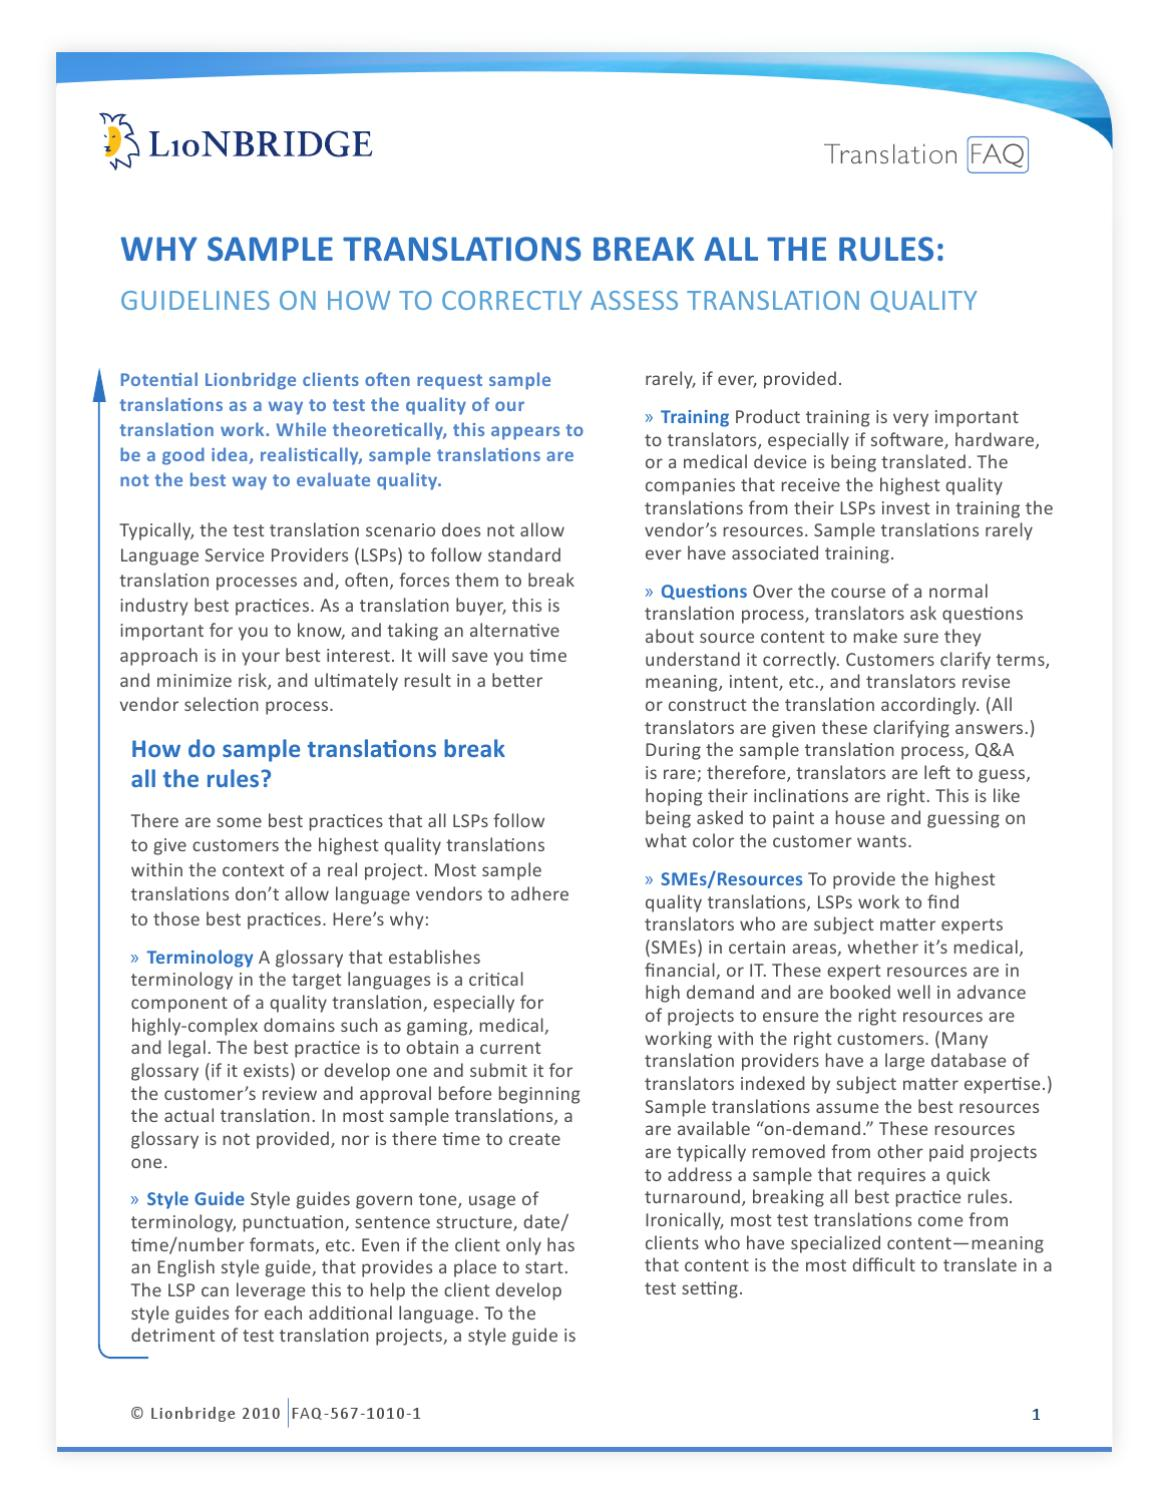 Why Sample Translations Break All the Rules by Patrick Bausemer - issuu